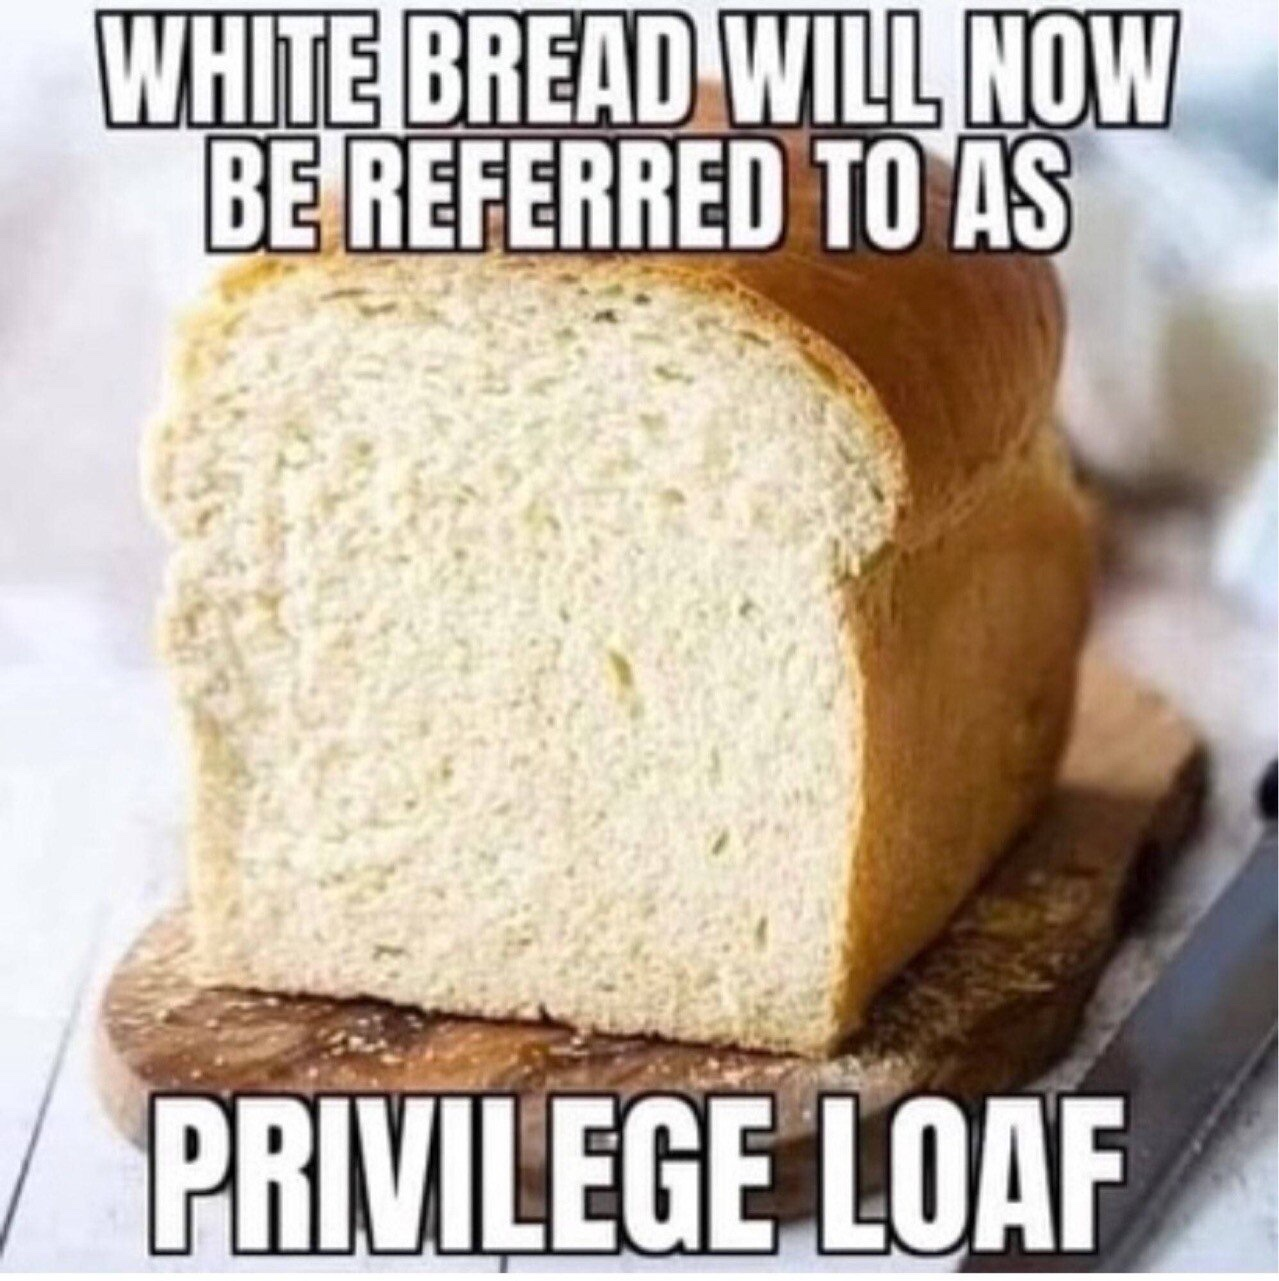 we need more representation from bread of color in our lunch boxes - meme